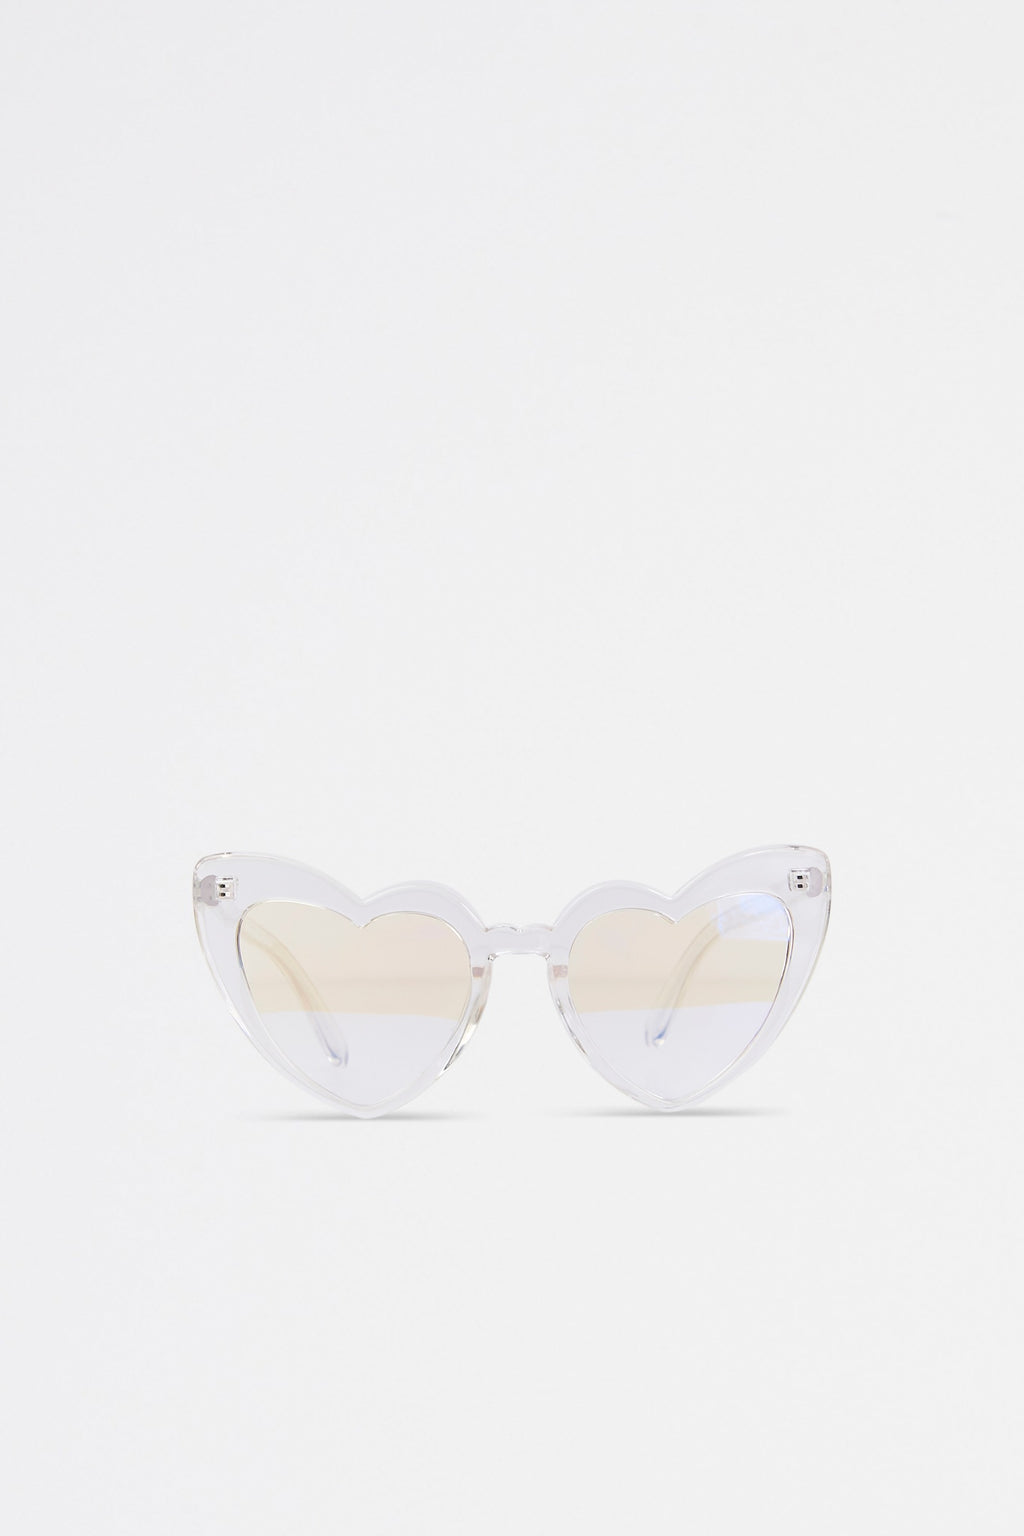 Heart Shaped Clear Lens Glasses